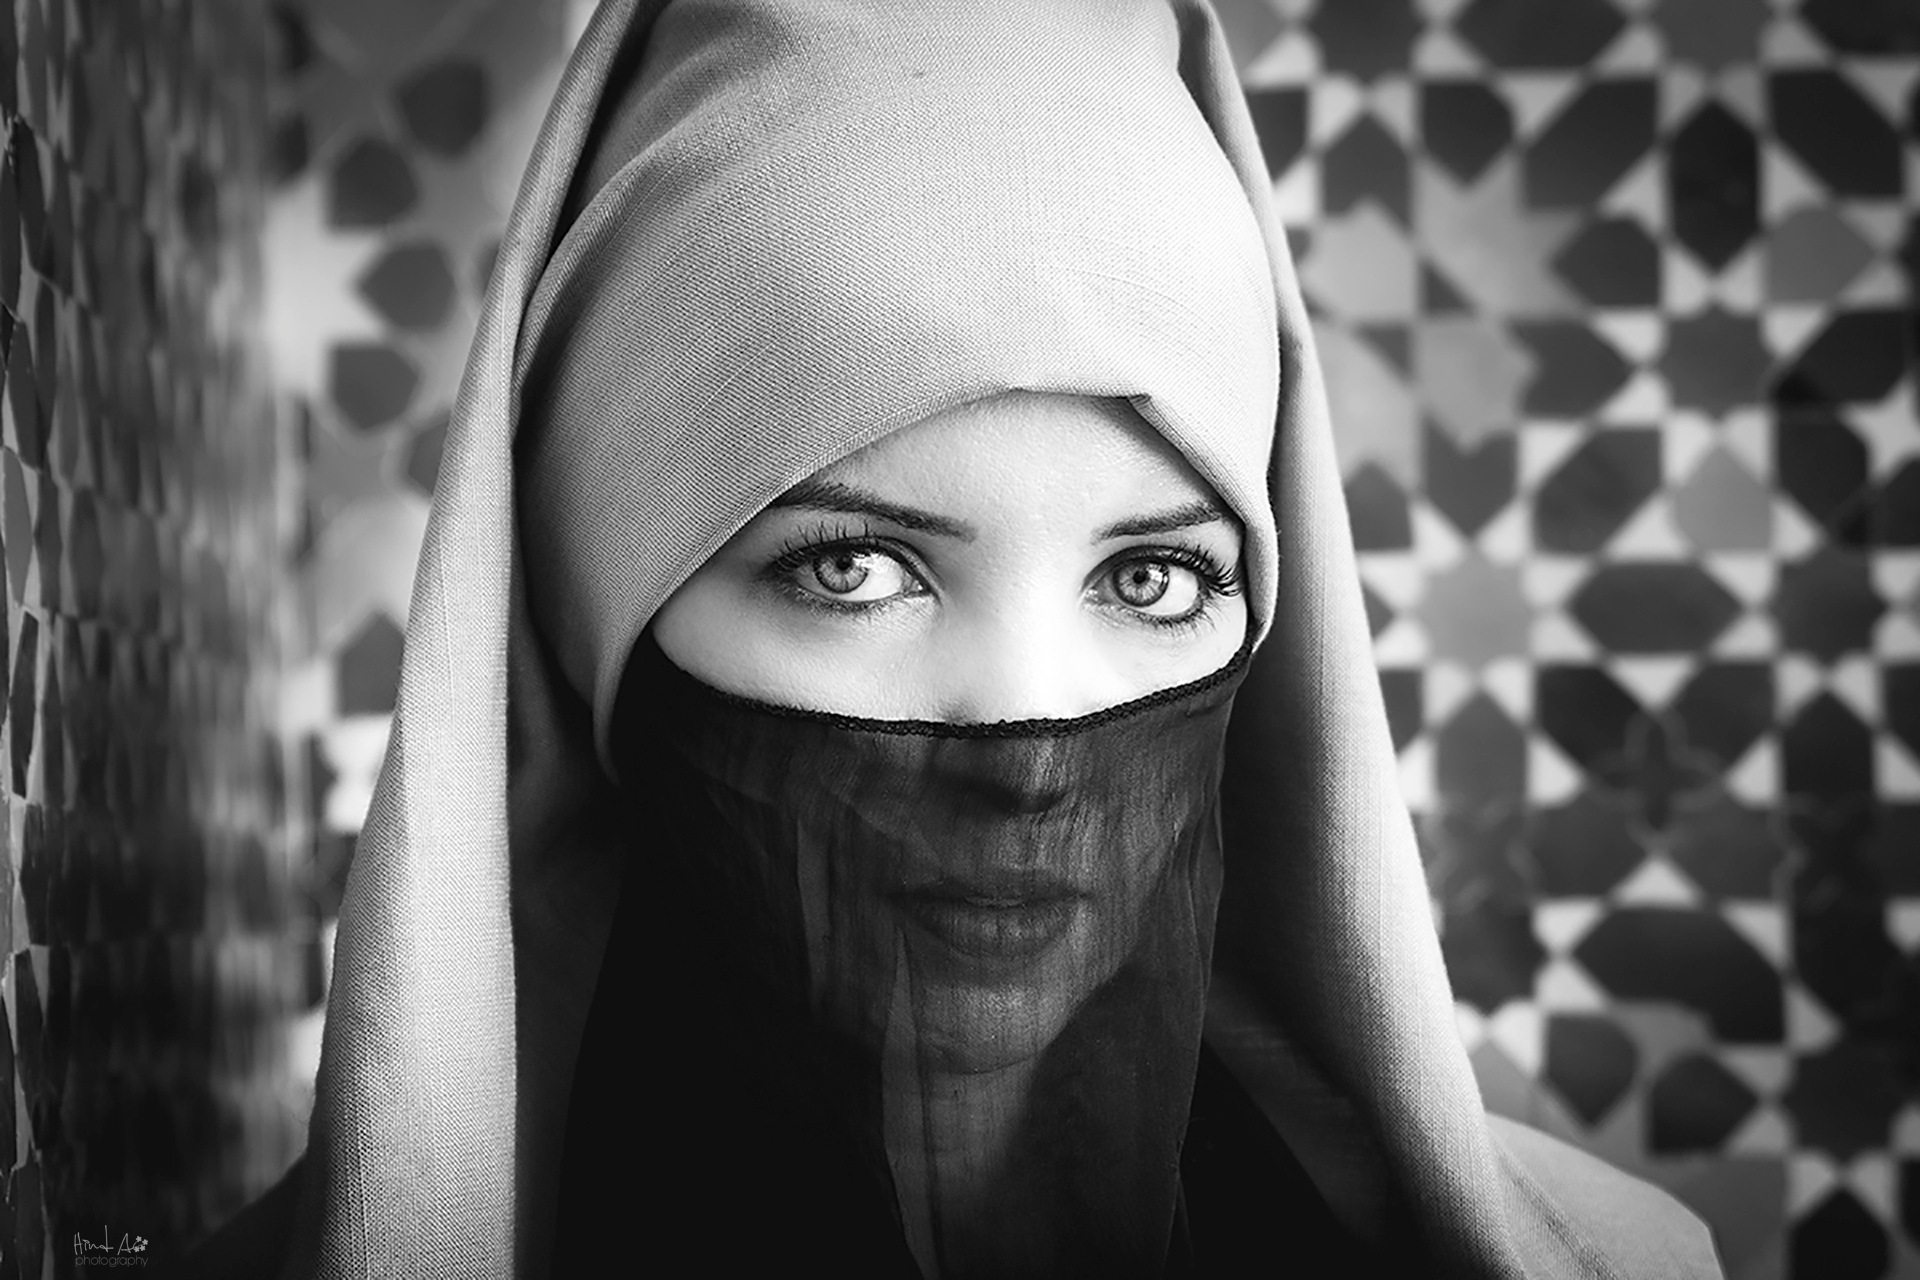 These eyes by Hind Al